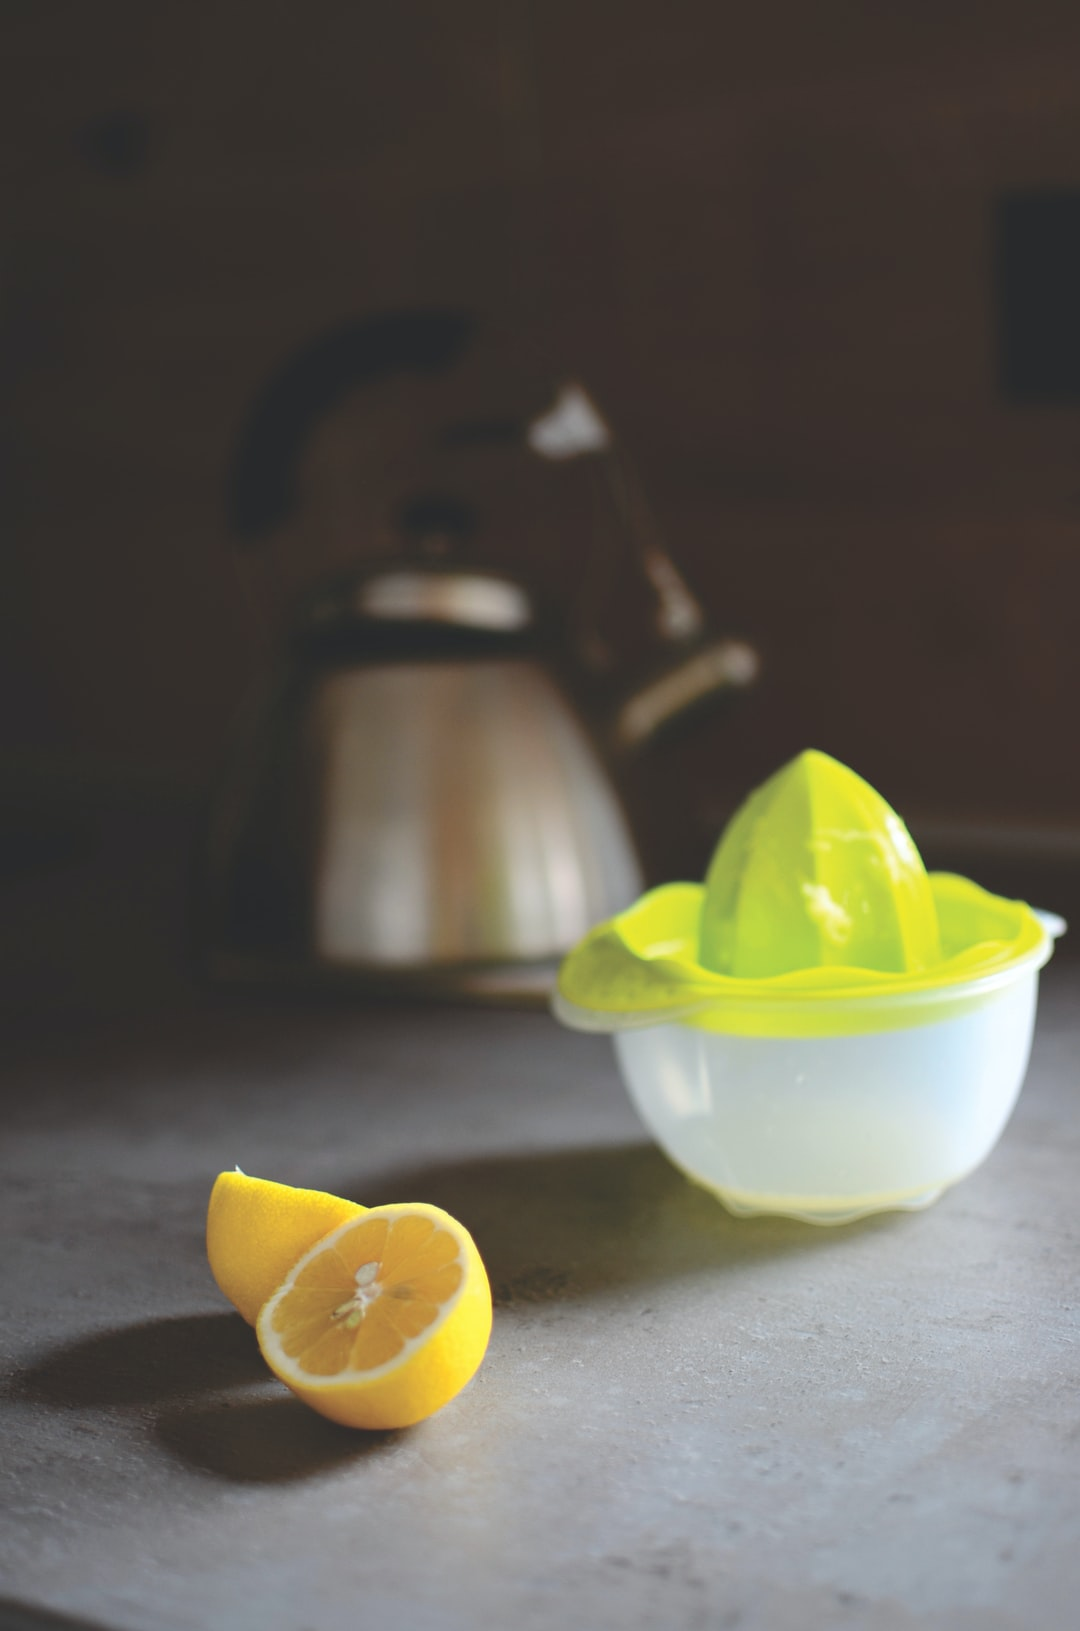 Lemons on a counter with a lemon juicer and a teapot with sun shining in through the window.